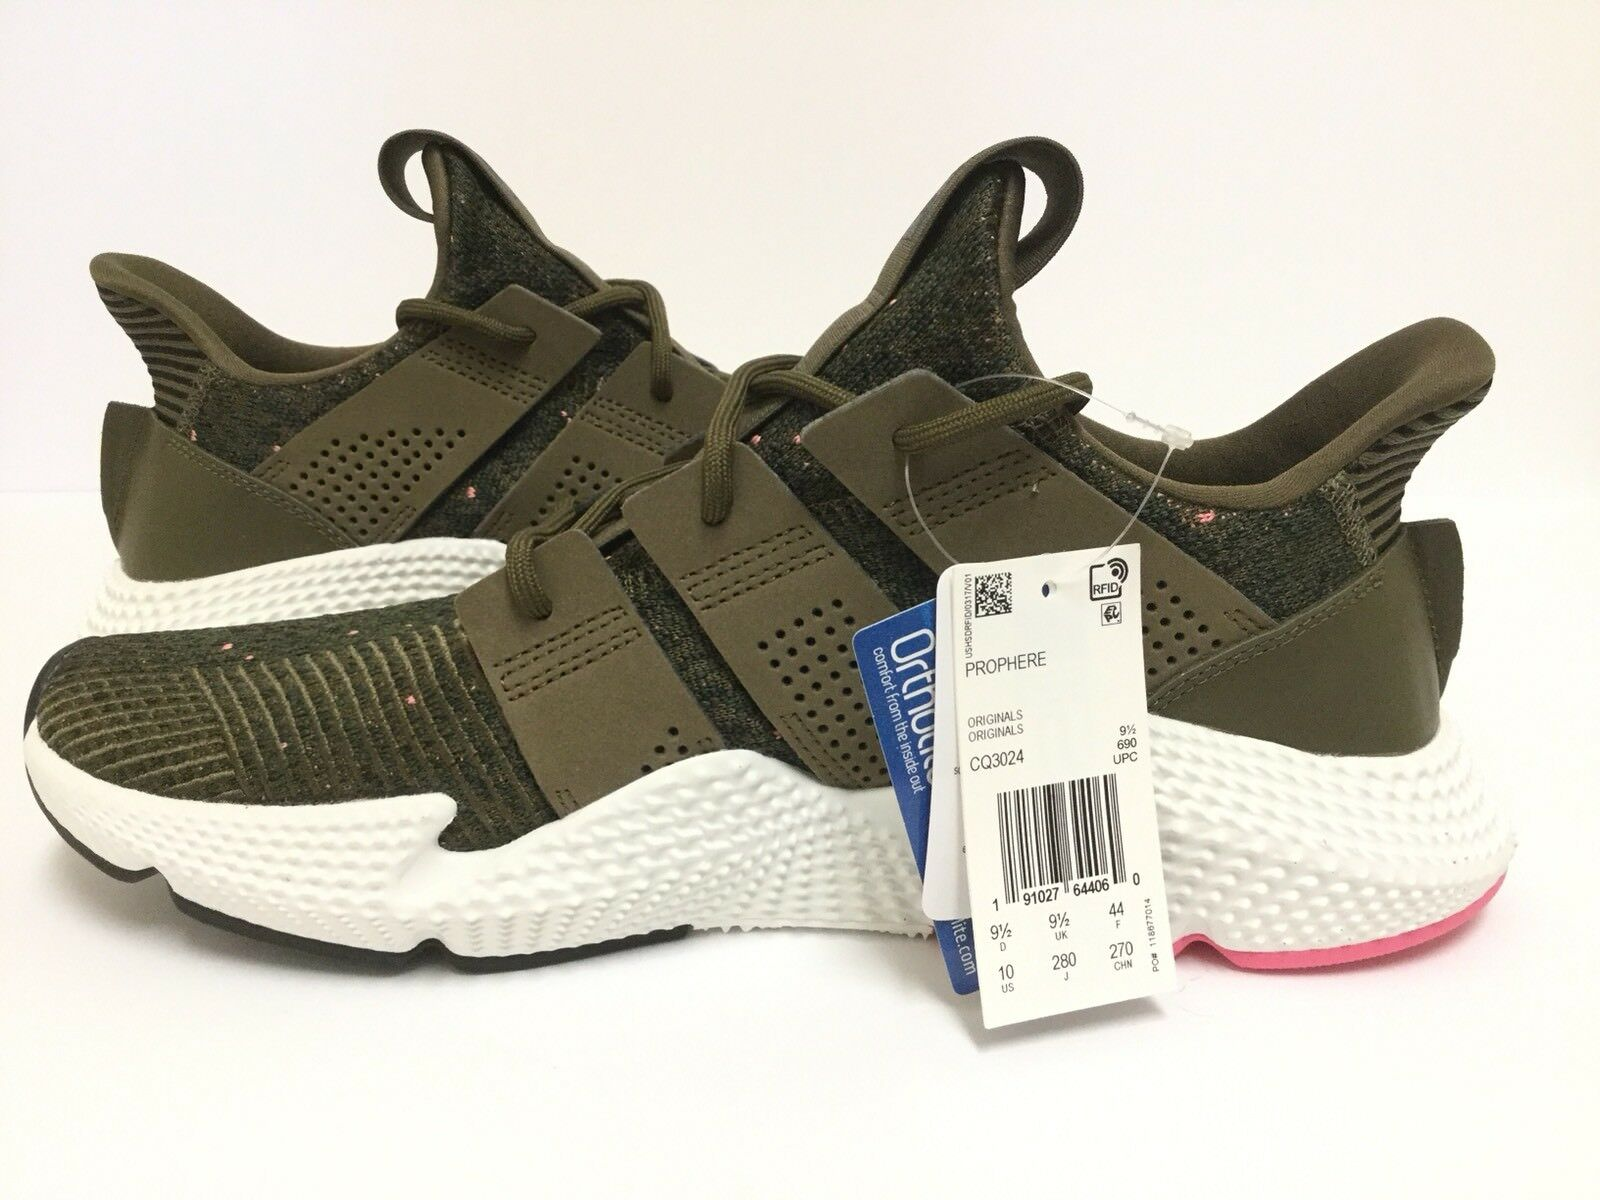 Adidas Men or Women Prophere Casual shoes Size 10